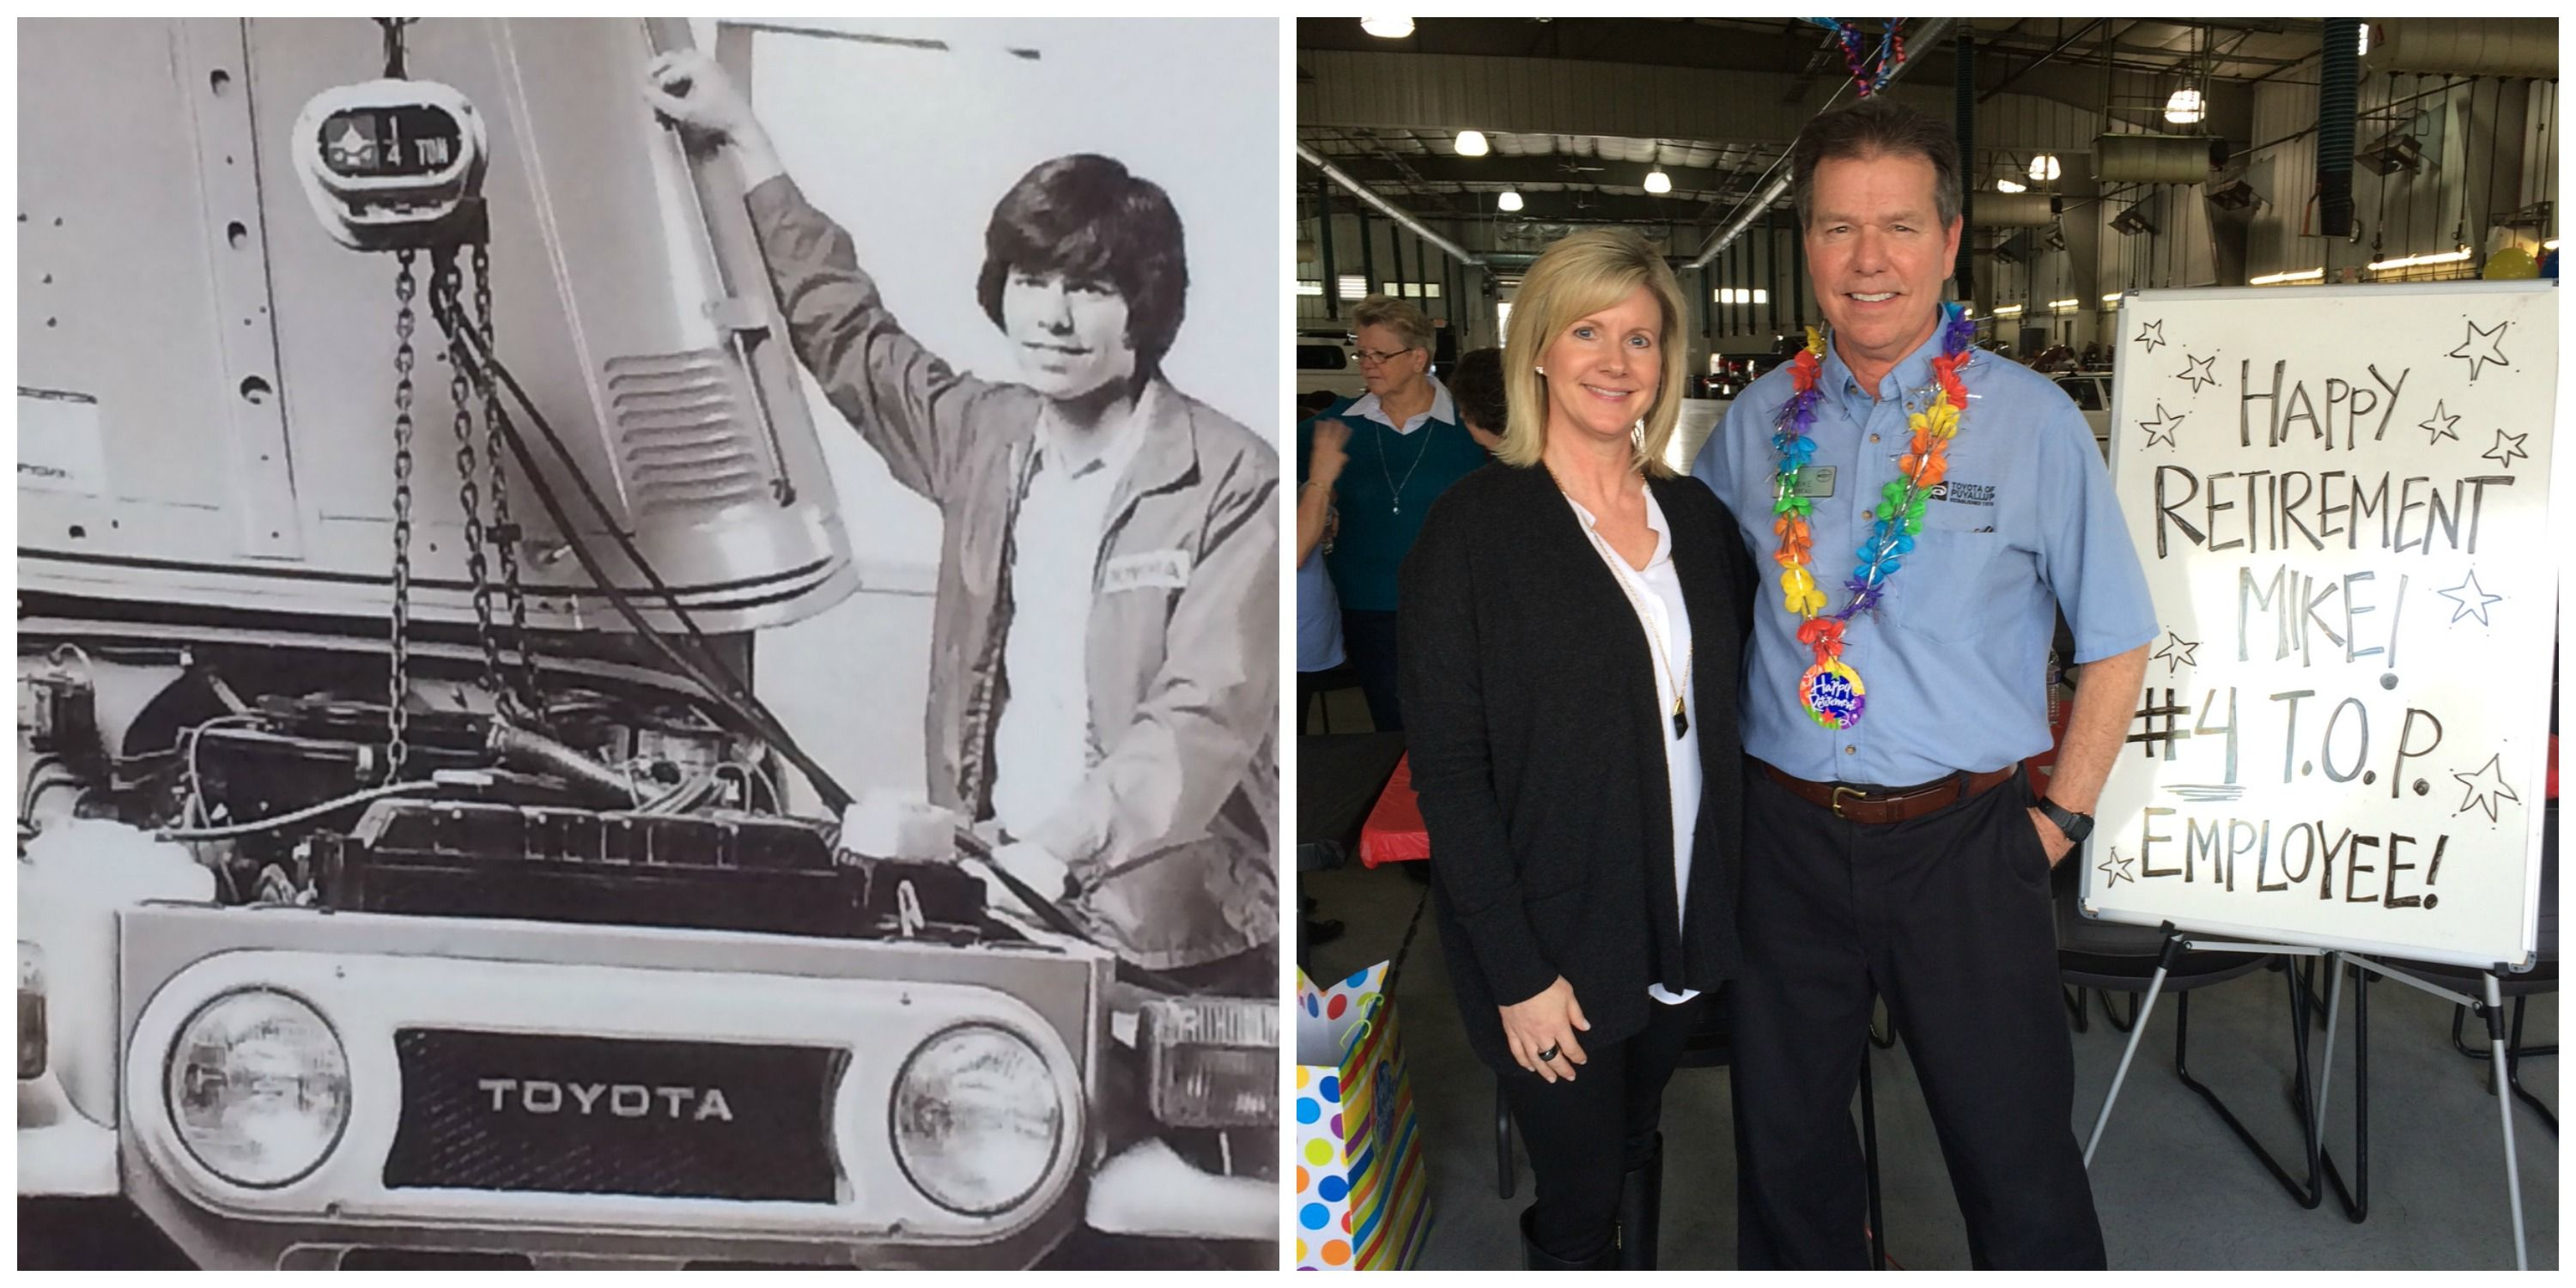 After 40+ Years With Toyota Of Puyallup, Service Advisor Mike Bibeau  Retires Today From